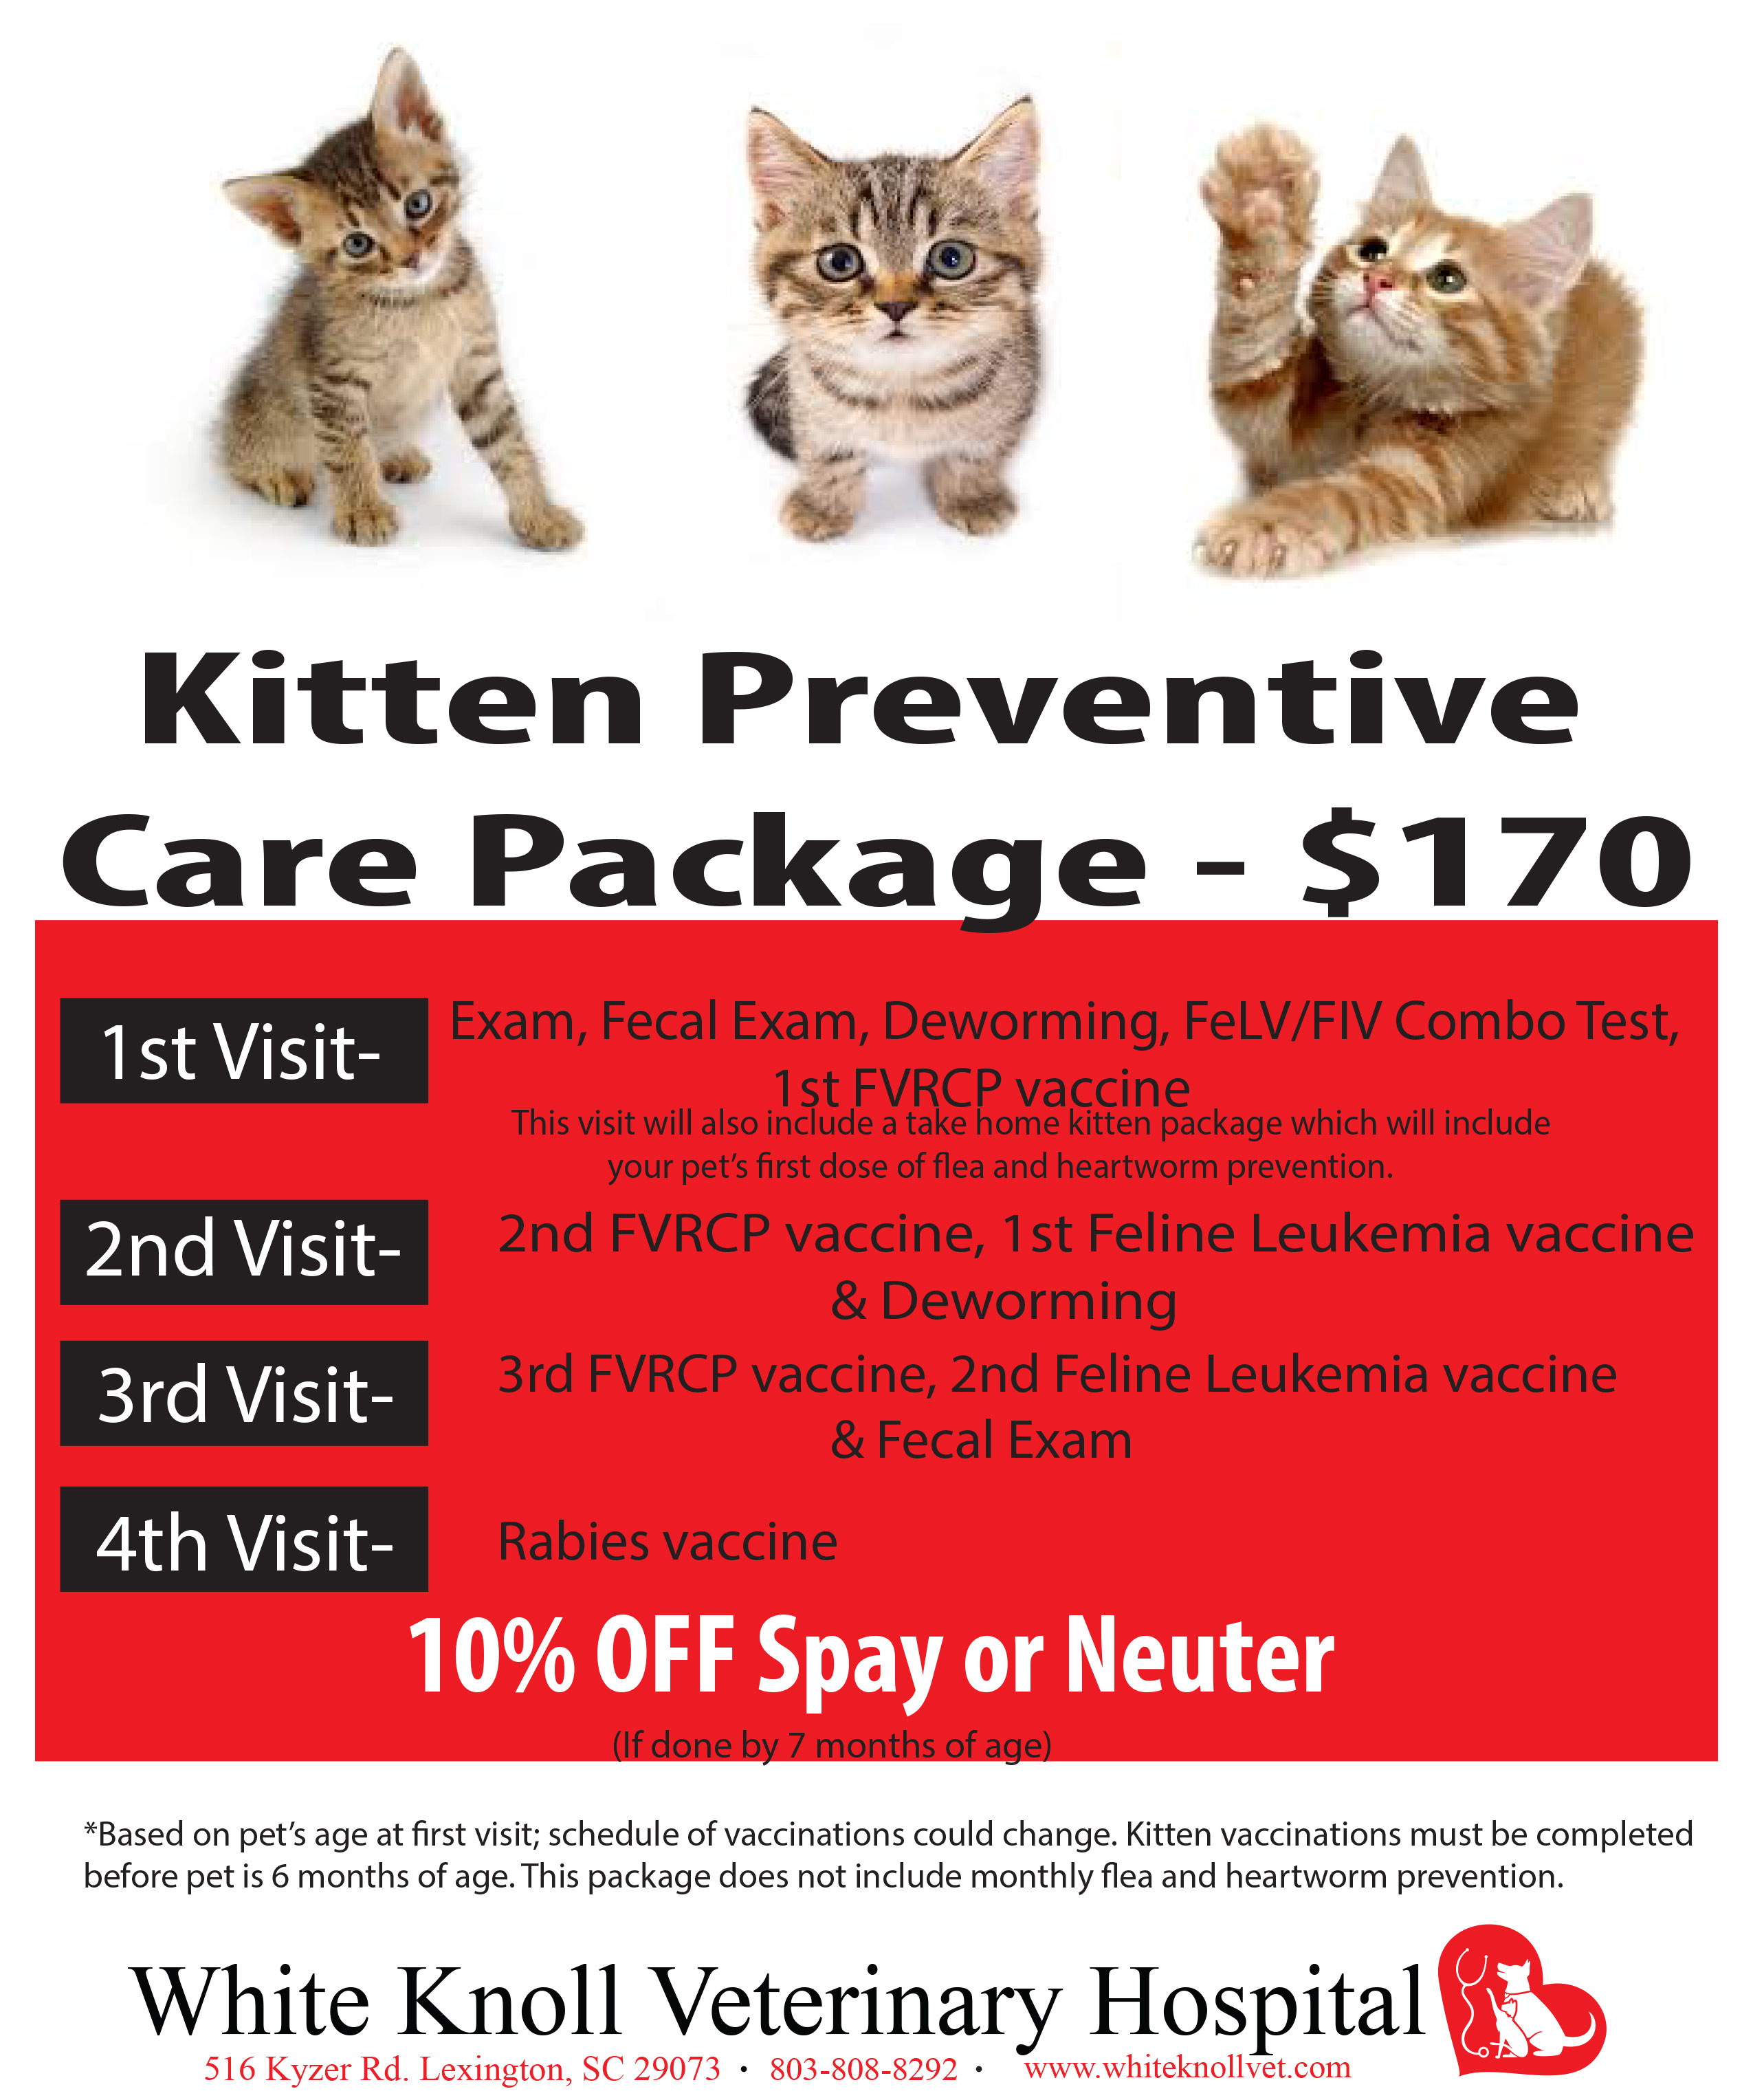 Specials in Lexington, SC - White Knoll Veterinary Hospital